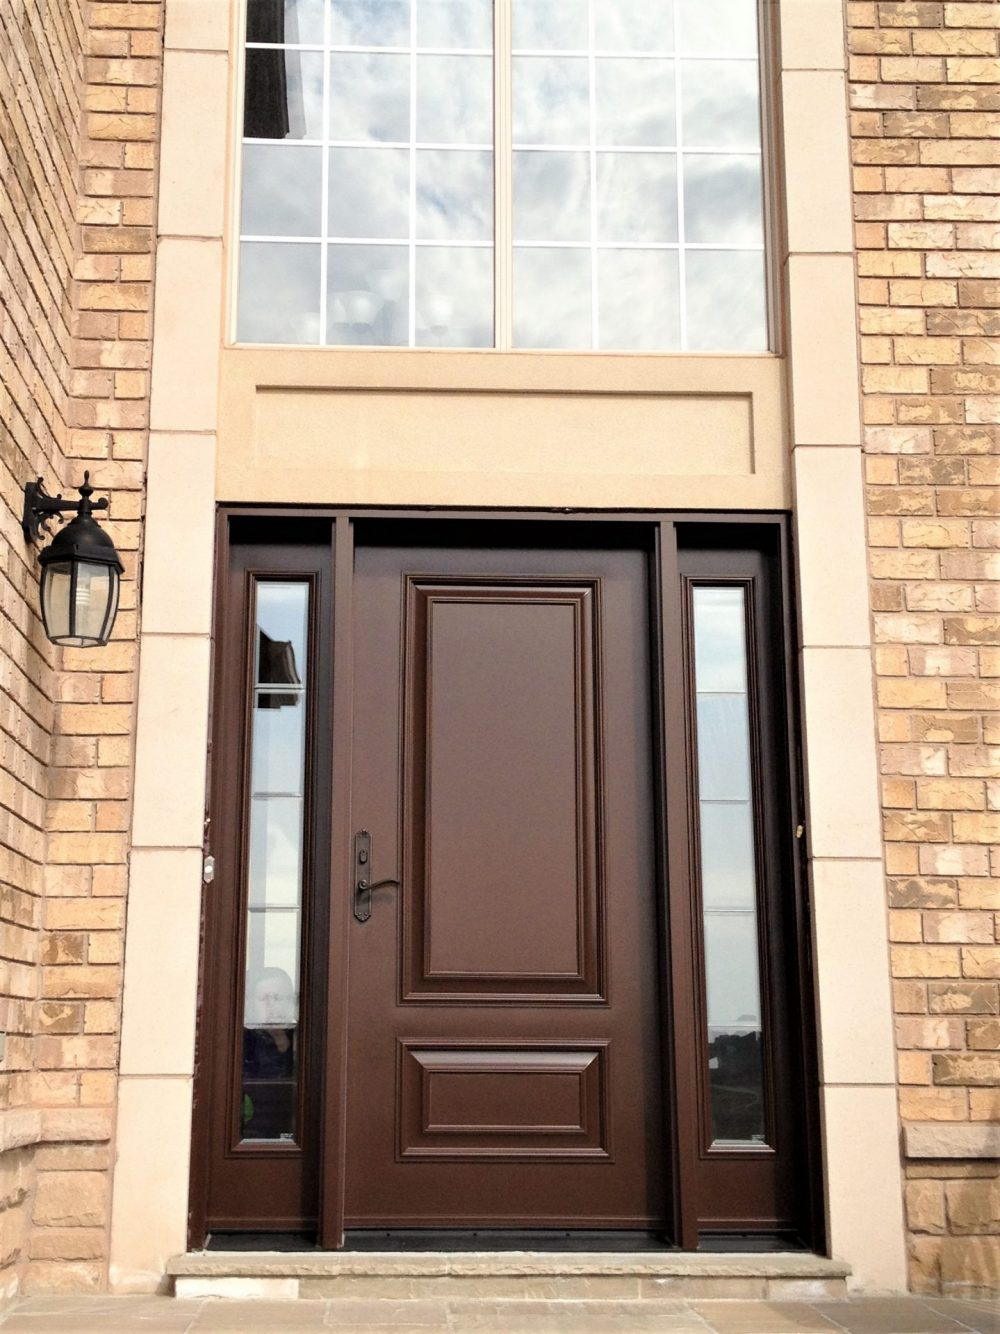 steel door system solid brown door with clear glass in sidelights